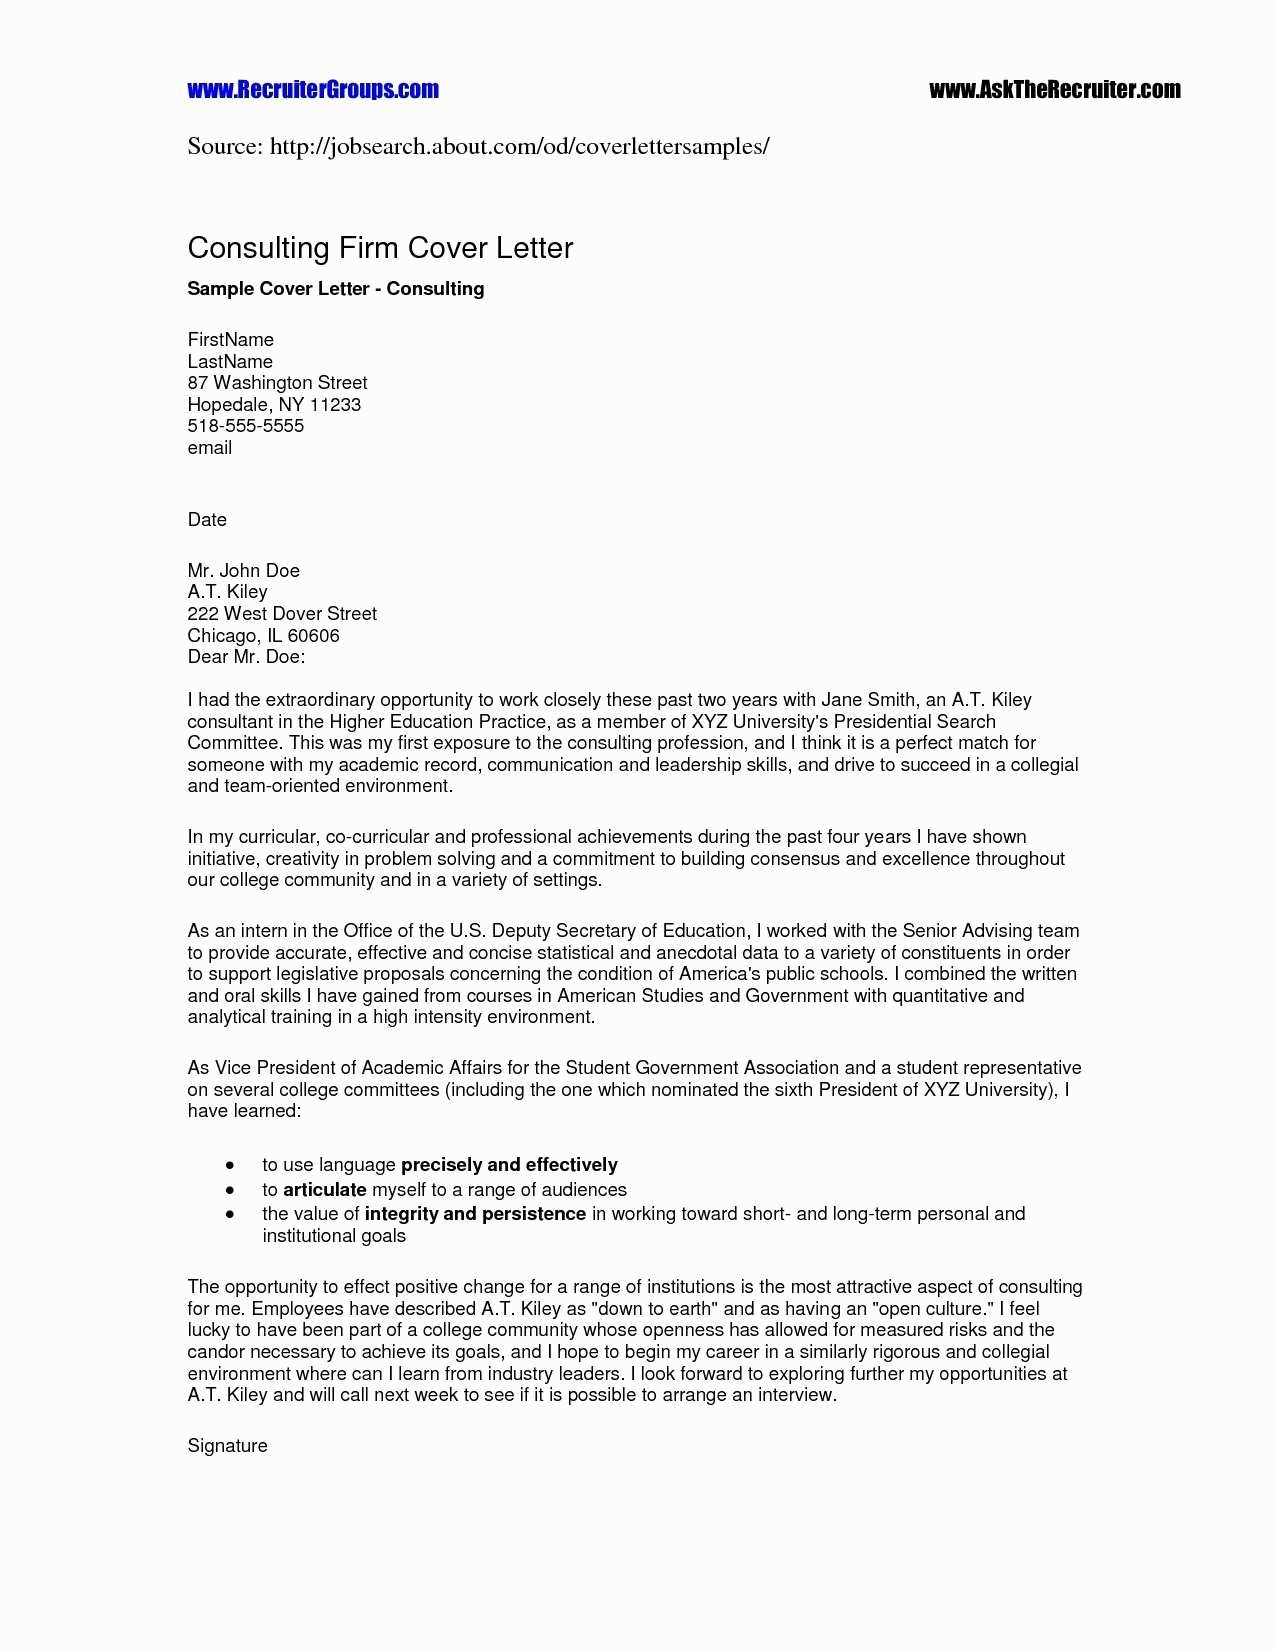 transfer of ownership letter template Collection-Transfer Ownership Letter Template Corporate Power attorney Template 20-q